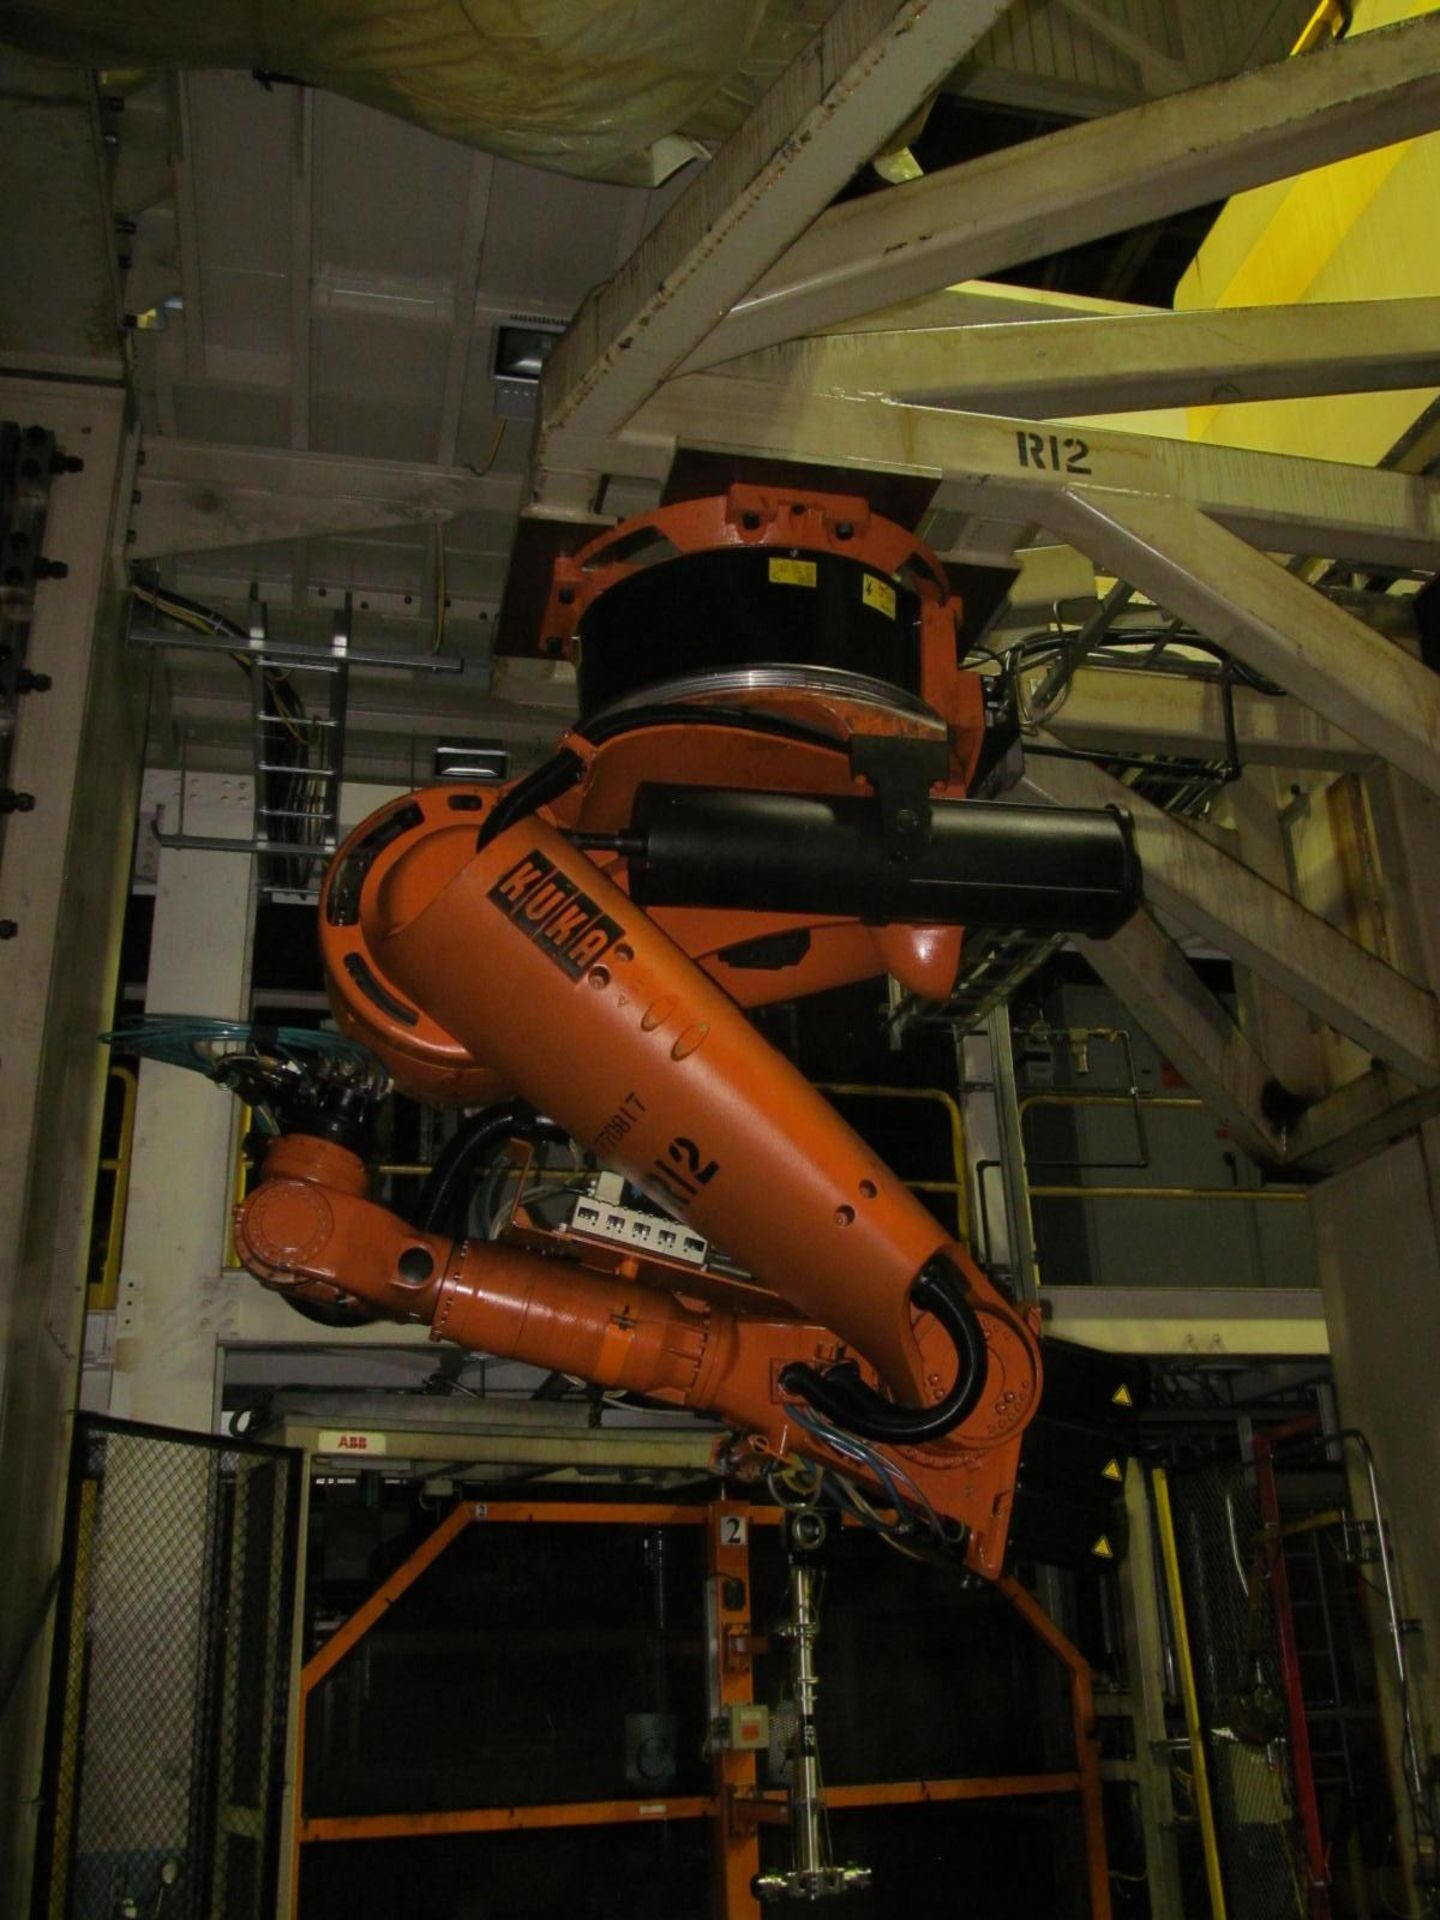 Lot 8 - 6-AXIS KUKA TRANSFER ROBOT w/ CONTROL & TEACH PAD, *PLEASE NOTE: SUBJECT TO SELLER CONFIRMATION*